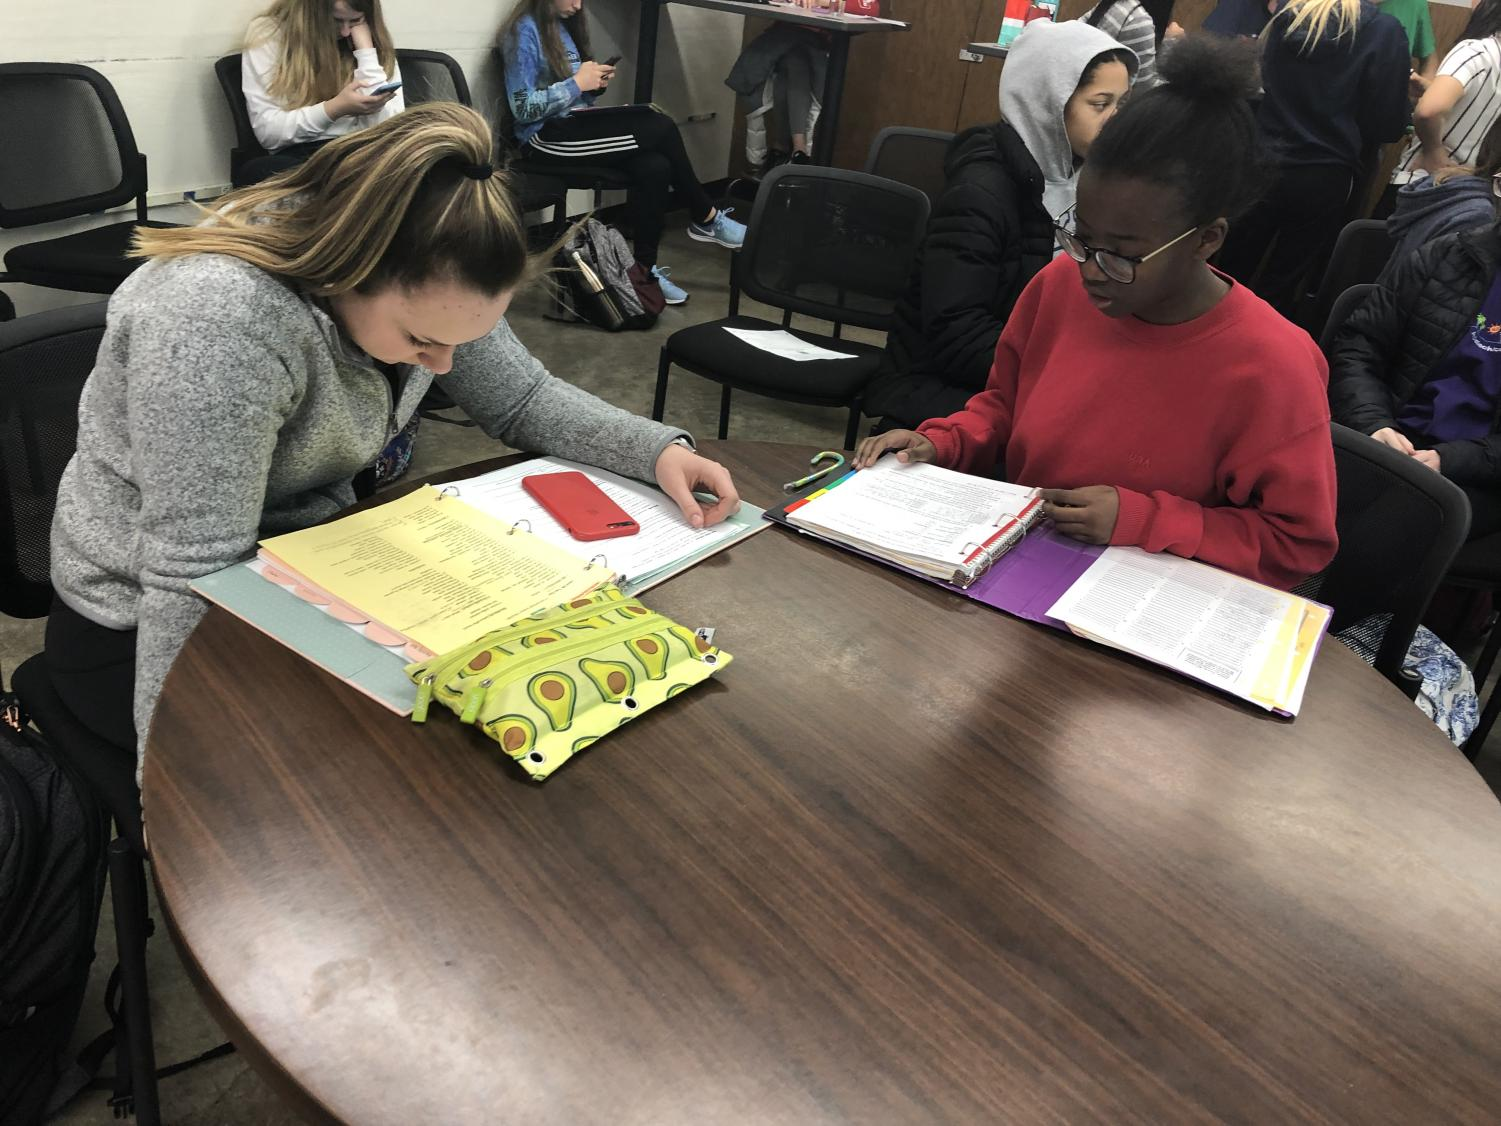 Lydia Heskje, so., and Grace Ntanyungu, fr., studying for their tests and finals in French class.